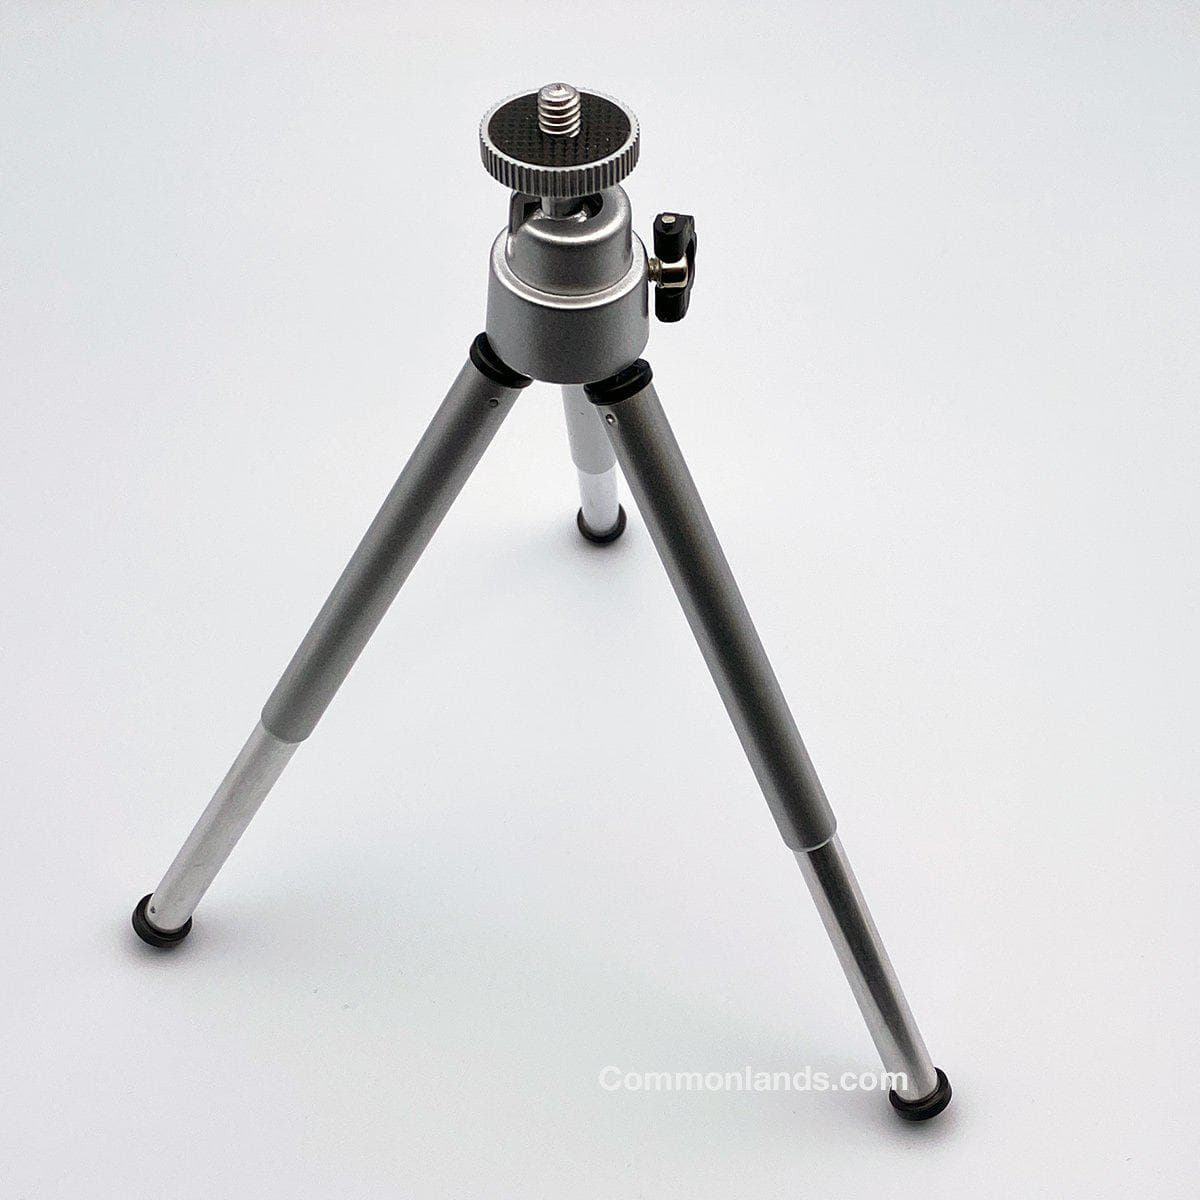 Miniature Telescoping Extension Tripod for Desktop Cameras